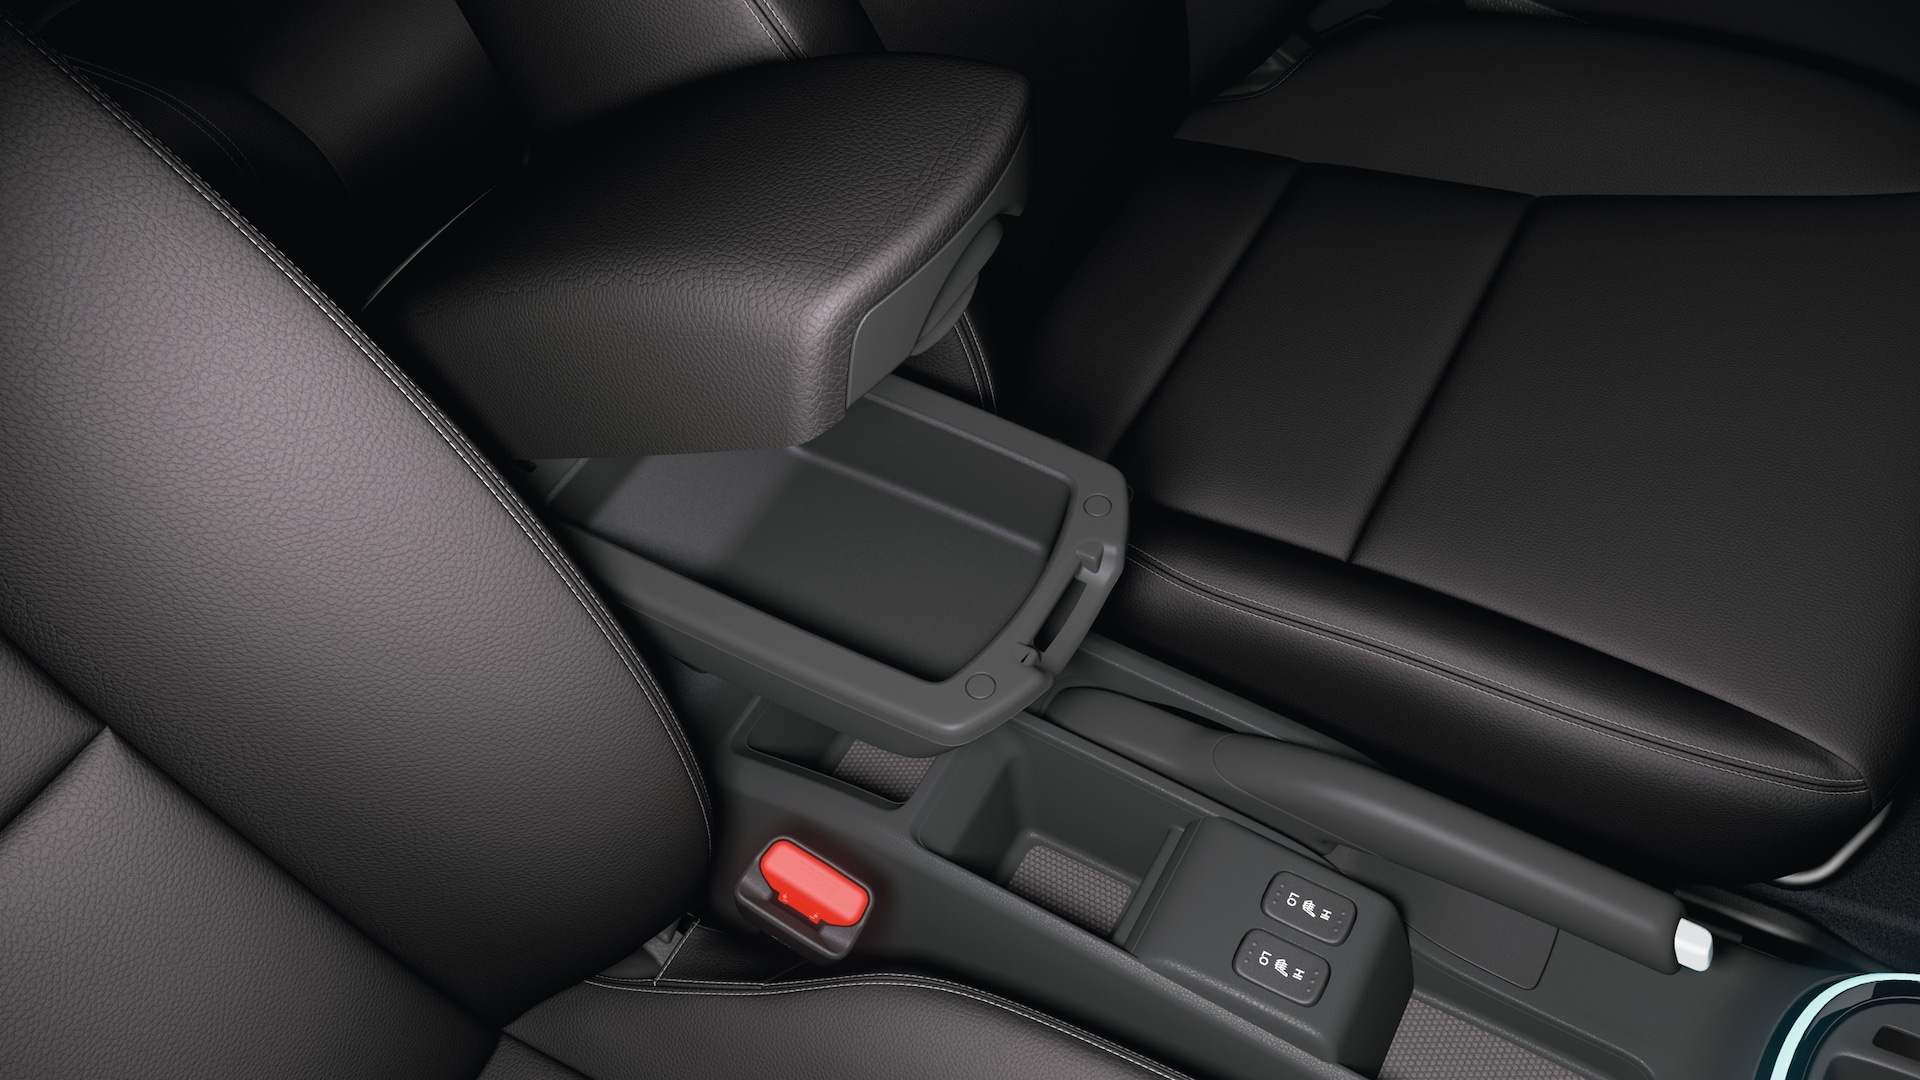 Interior view of armrest compartment detail on the 2020 Honda Fit.